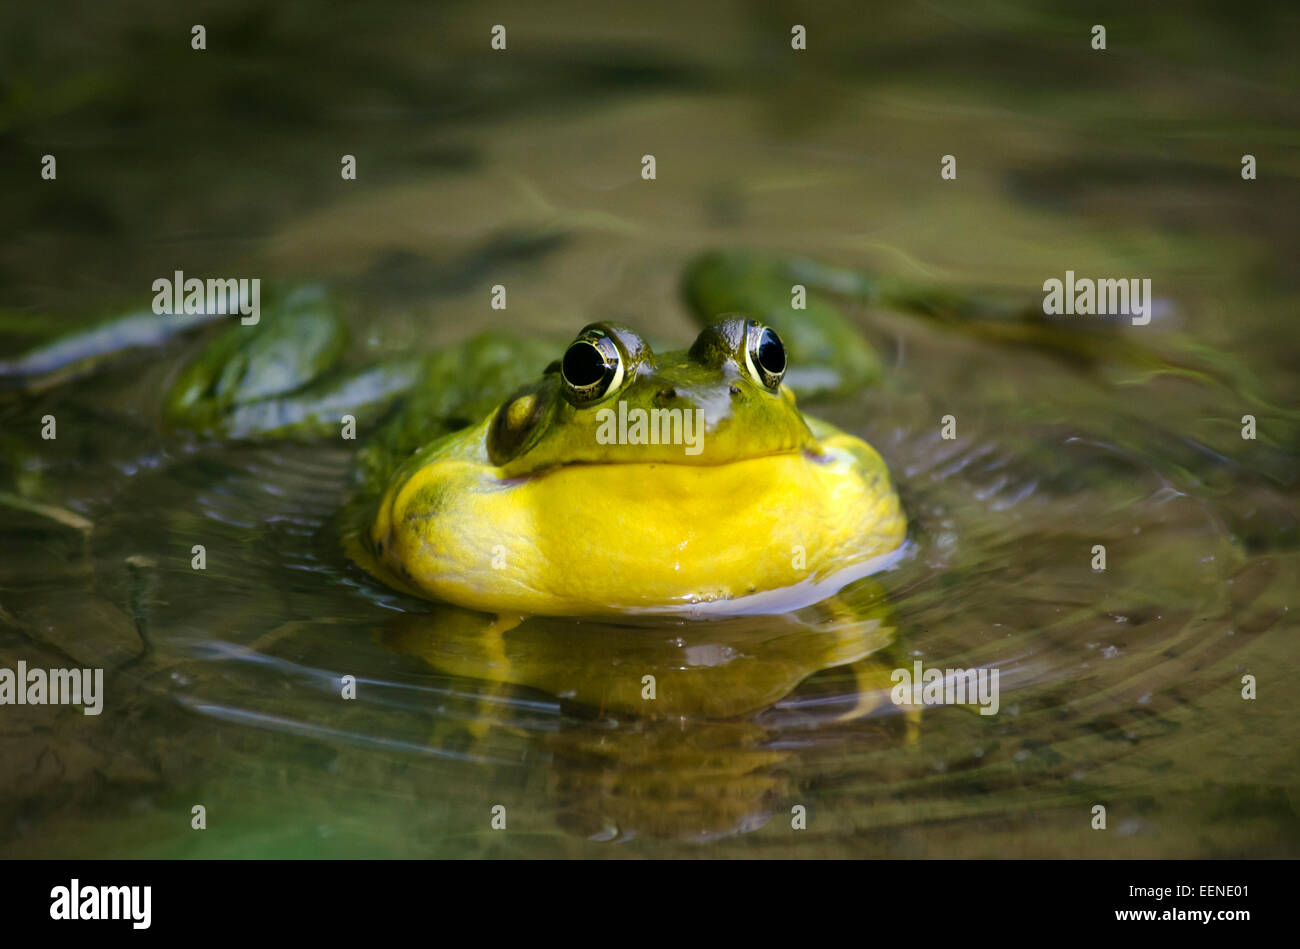 Frog close up in pond calling for a mate. - Stock Image